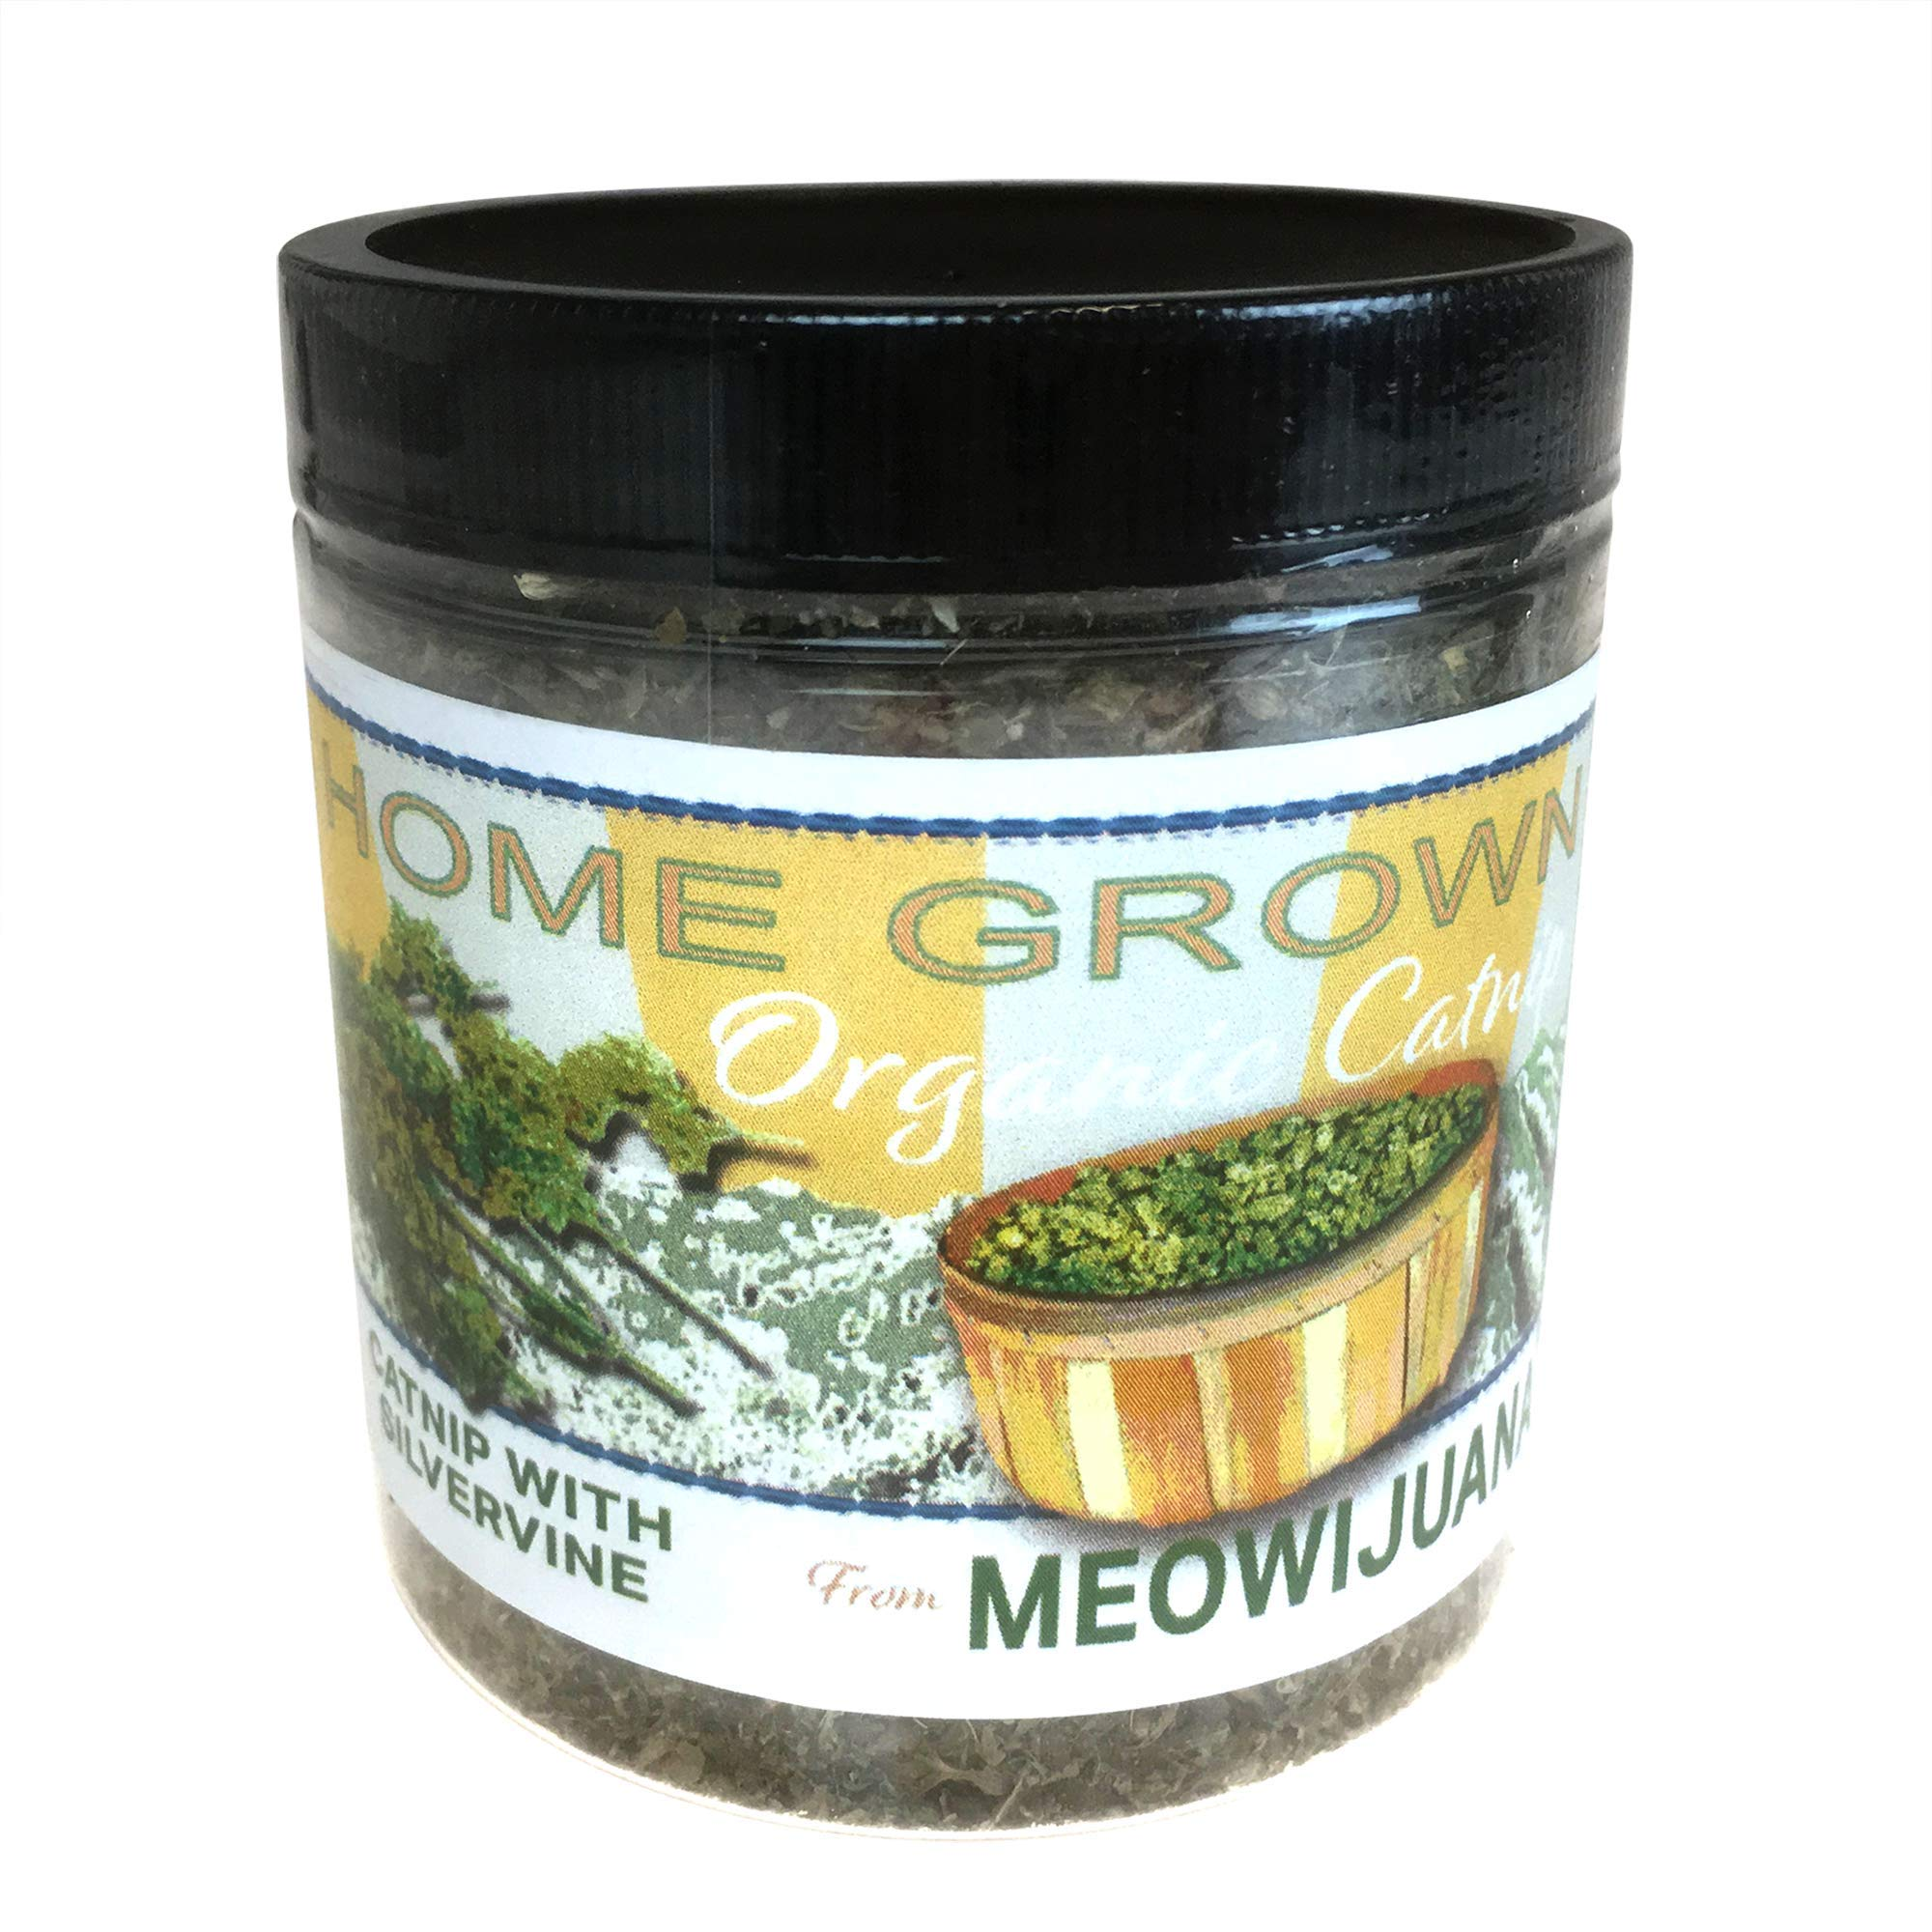 Meowijuana Catnip with Silvervine Blend, Feline Approved, Infused with Maximum Potency Your Cat is Guaranteed to go Crazy for!